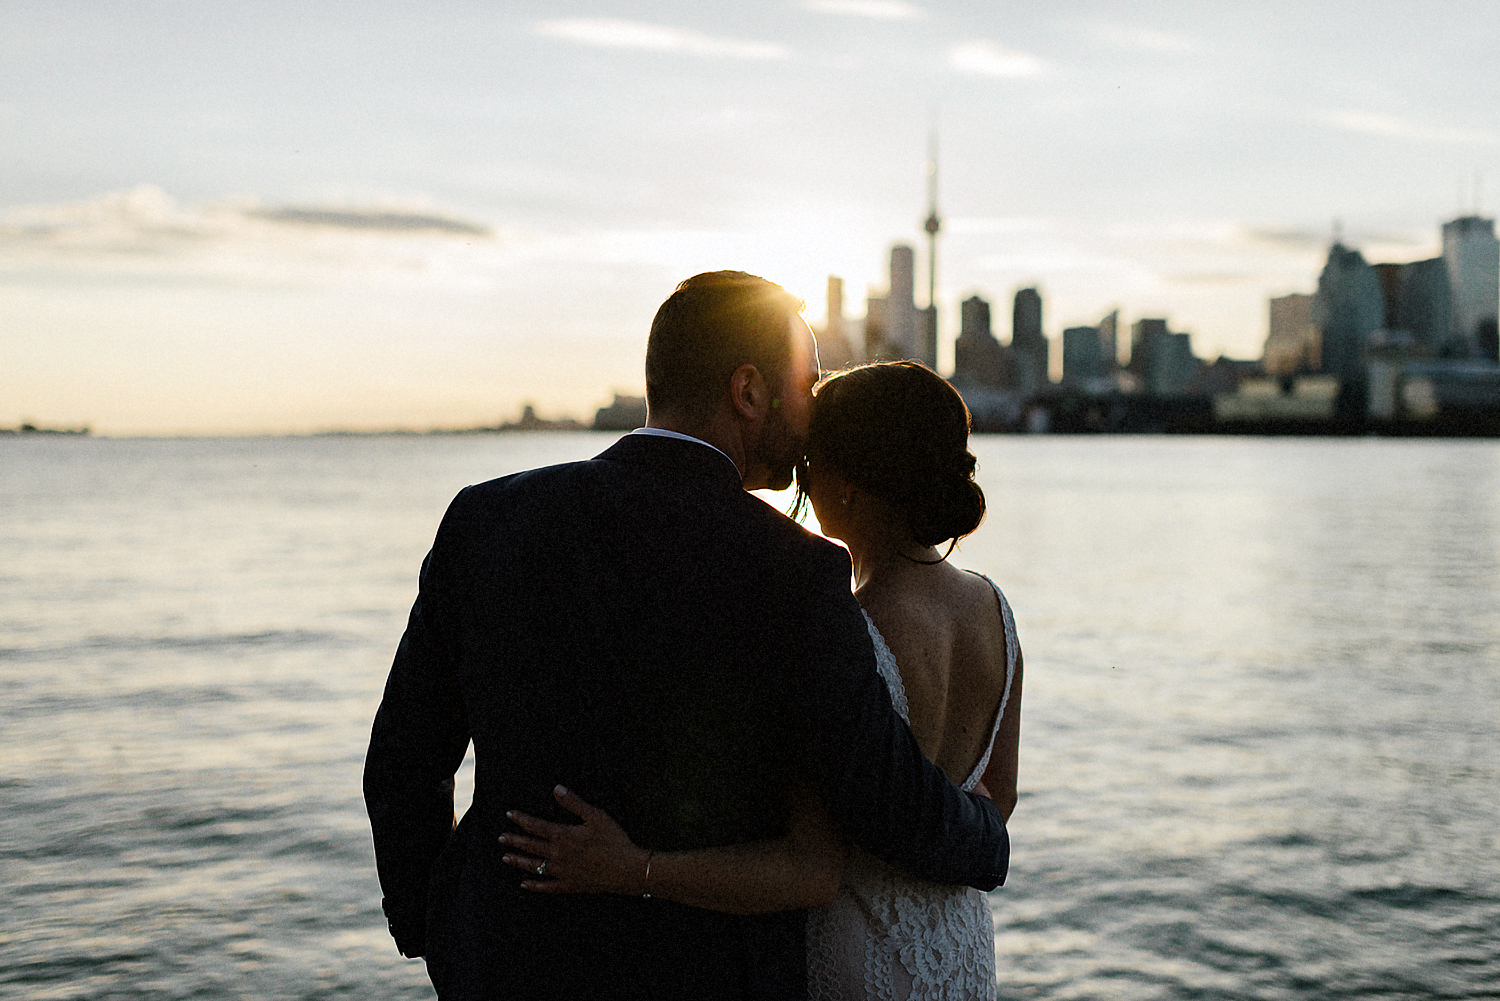 Best-Wedding-photographers-Toronto-NAtural-Candid-wedding-photography-Airship37-Sunset-Portrait-bride-and-veil-sunset-golden-light-toronto-skyline-portraits-candid.jpg